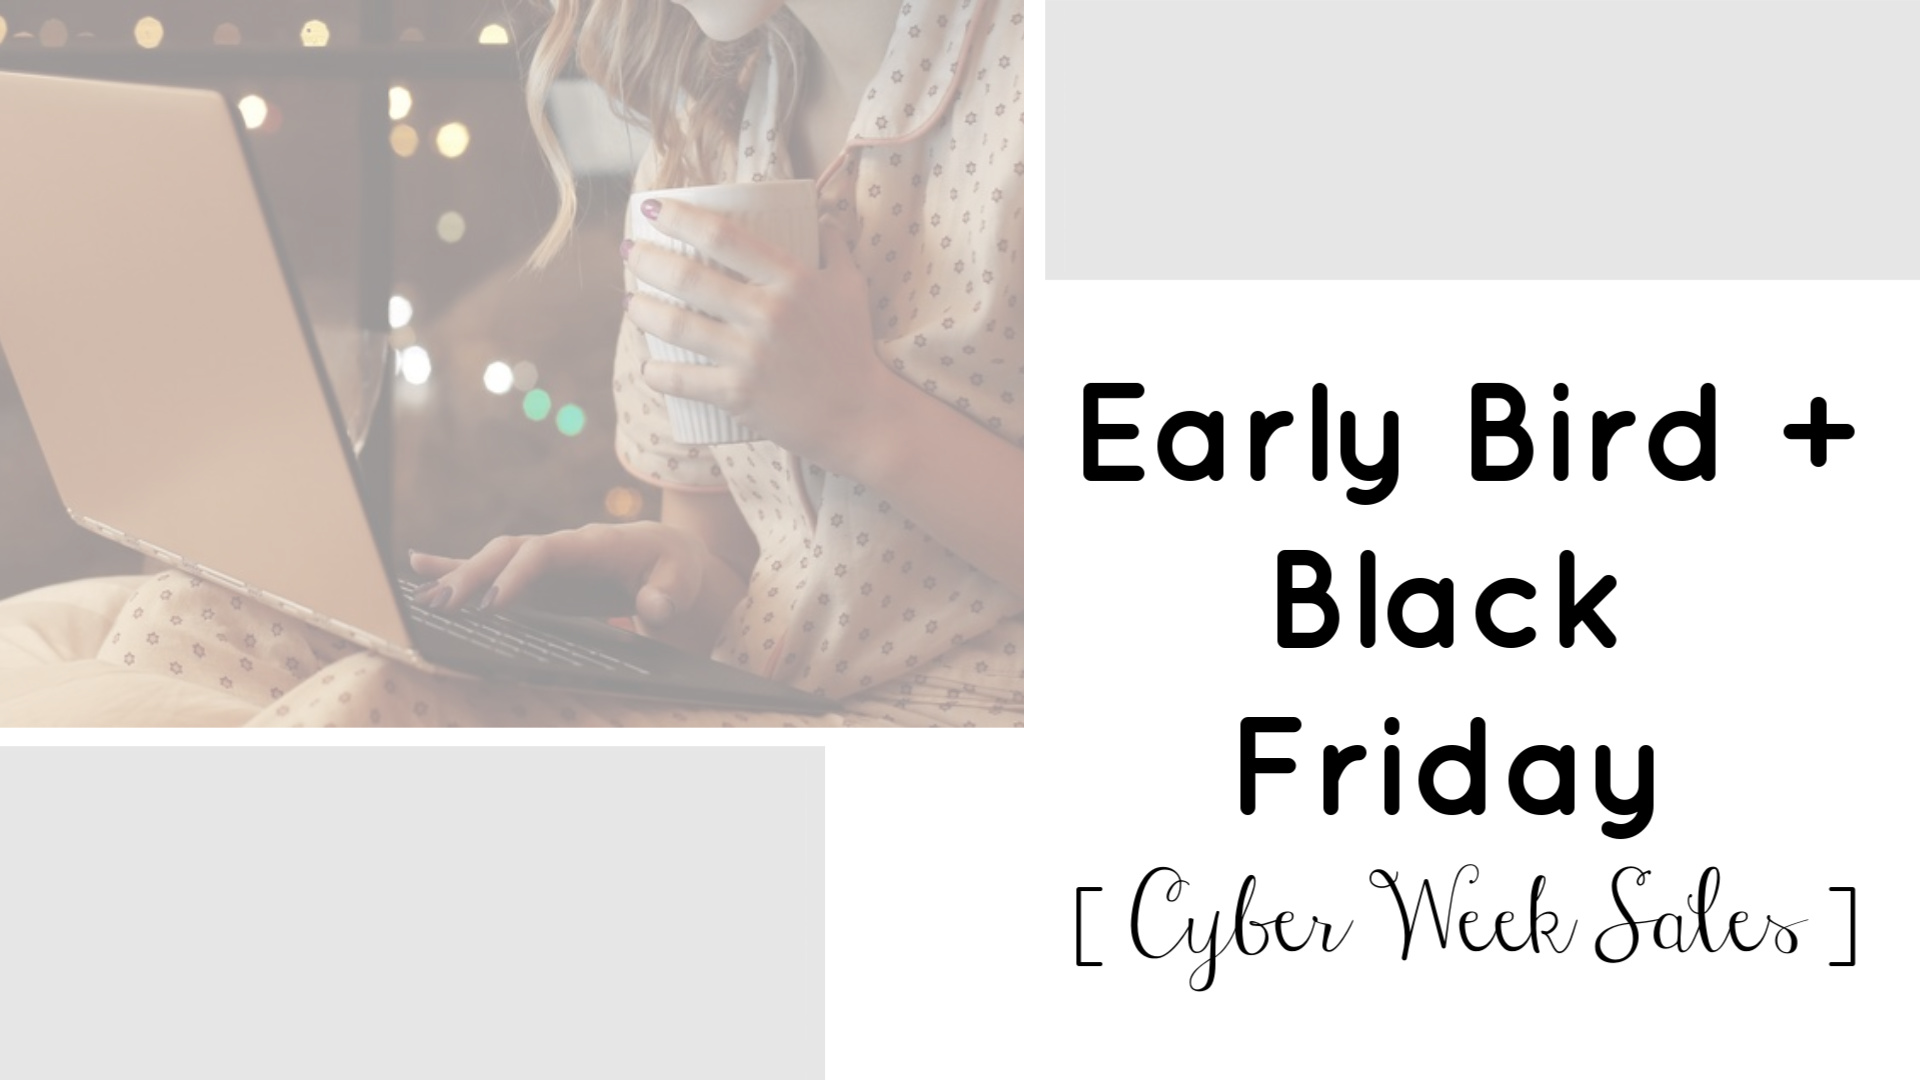 Black Friday | Doorbusters | Cyber Week | Teacherfashionista | Jules